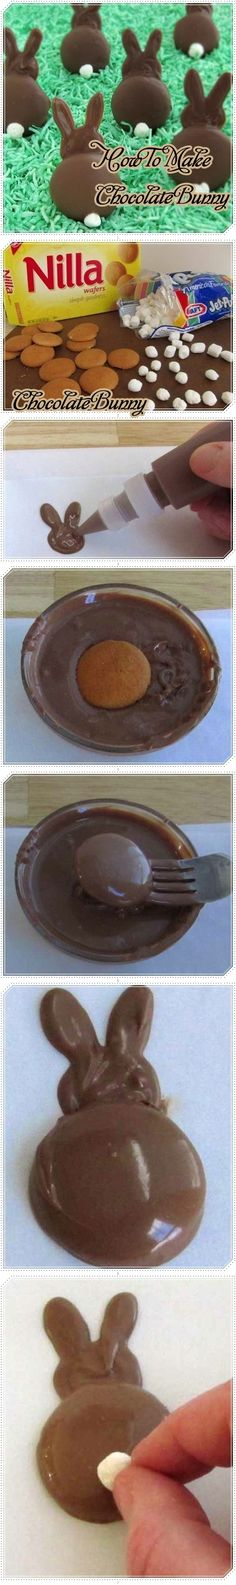 How to Make Chocolate Bunny